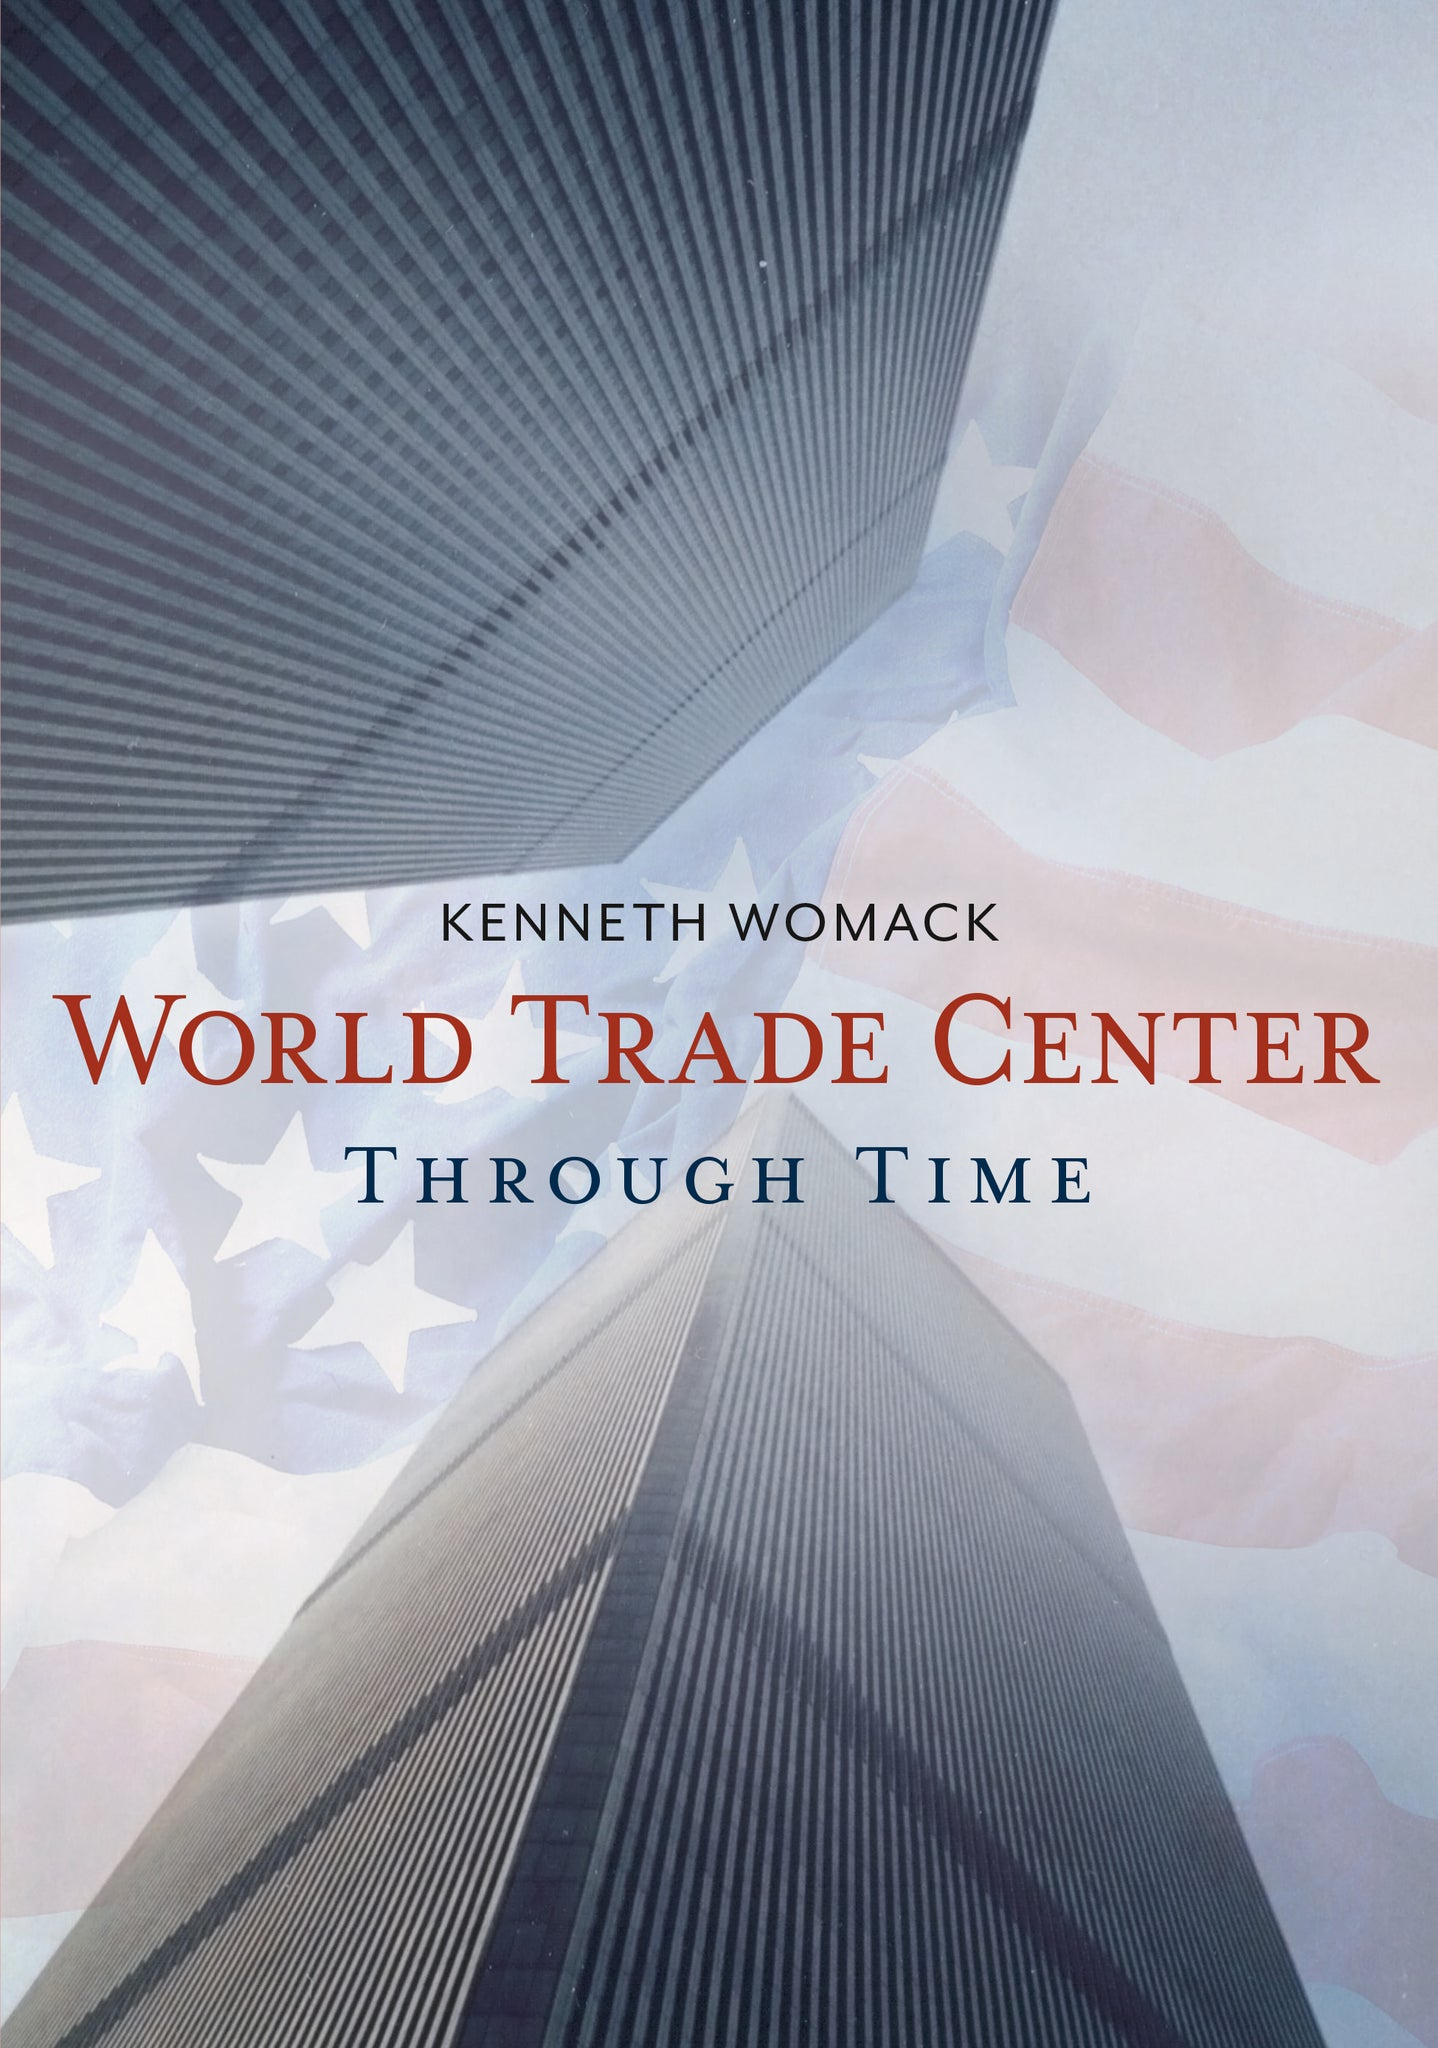 World Trade Center Through Time